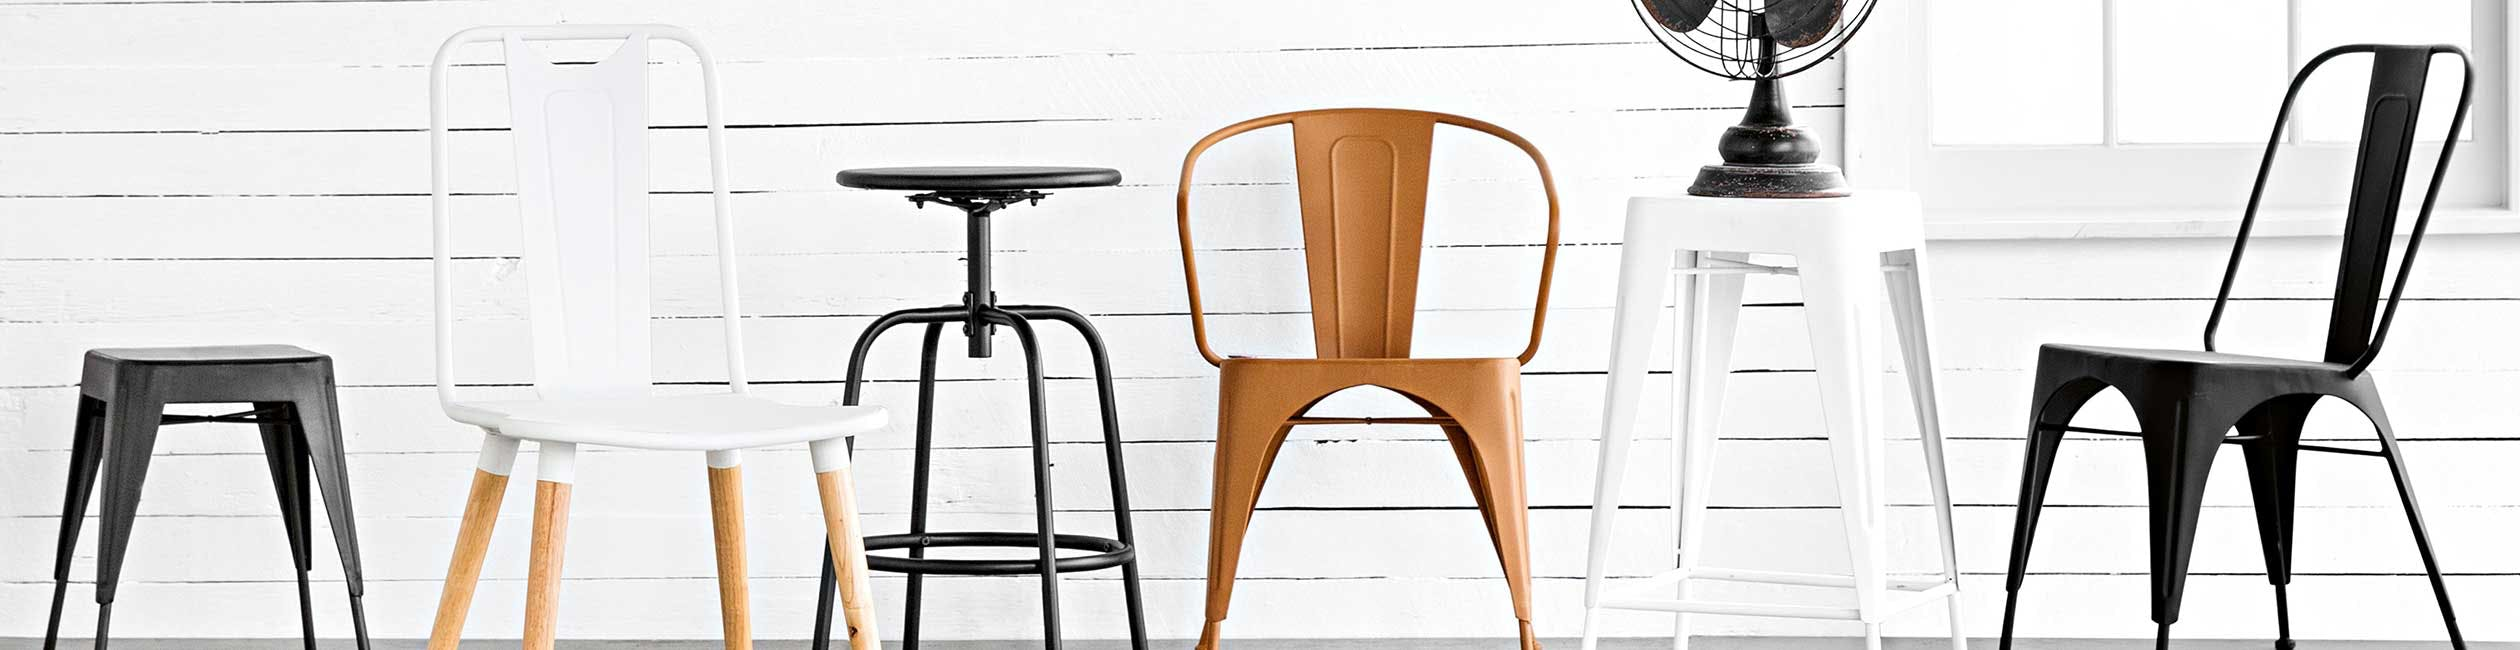 Bar Stools Dining Chairs Office Chairs Ottoman Amp More